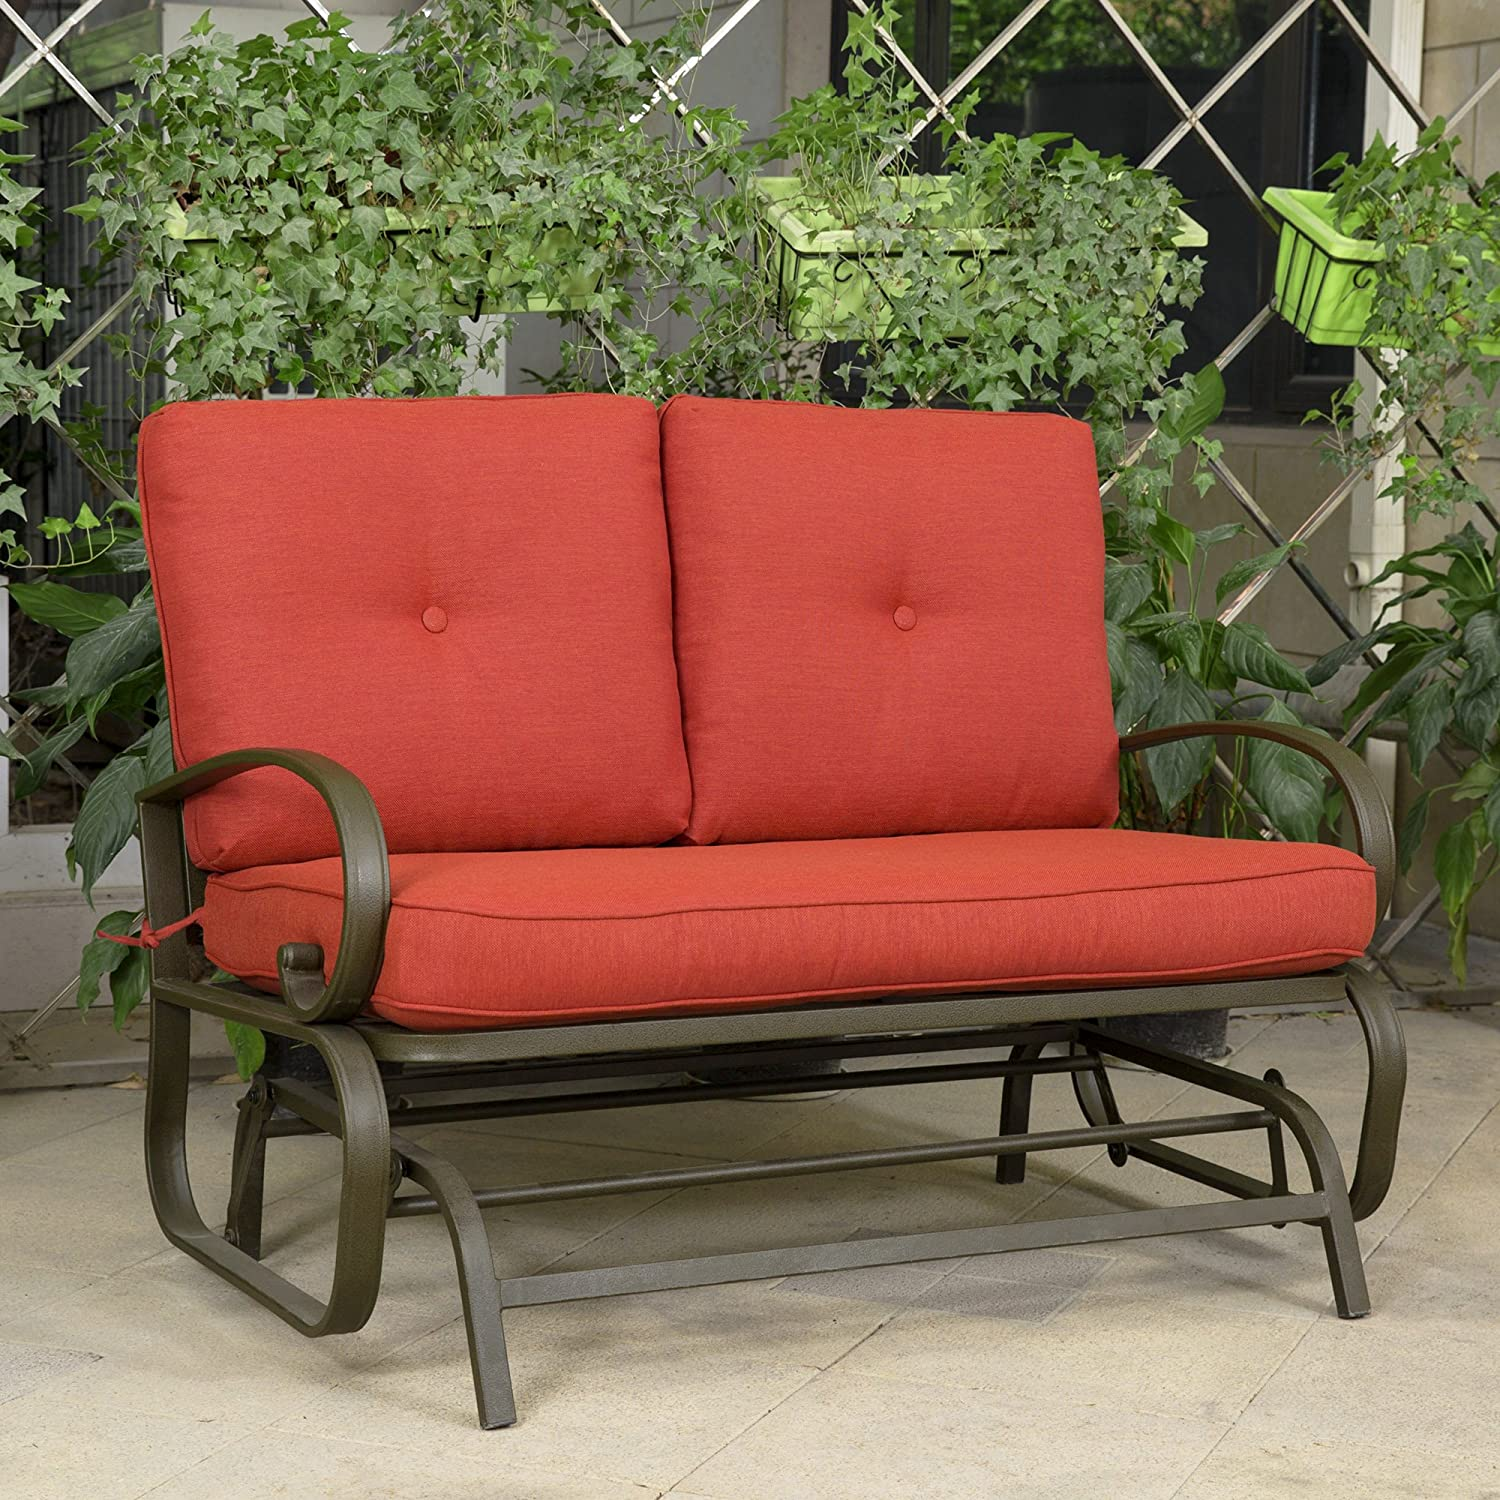 Amazon Loveseats Patio Seating Patio Lawn & Garden